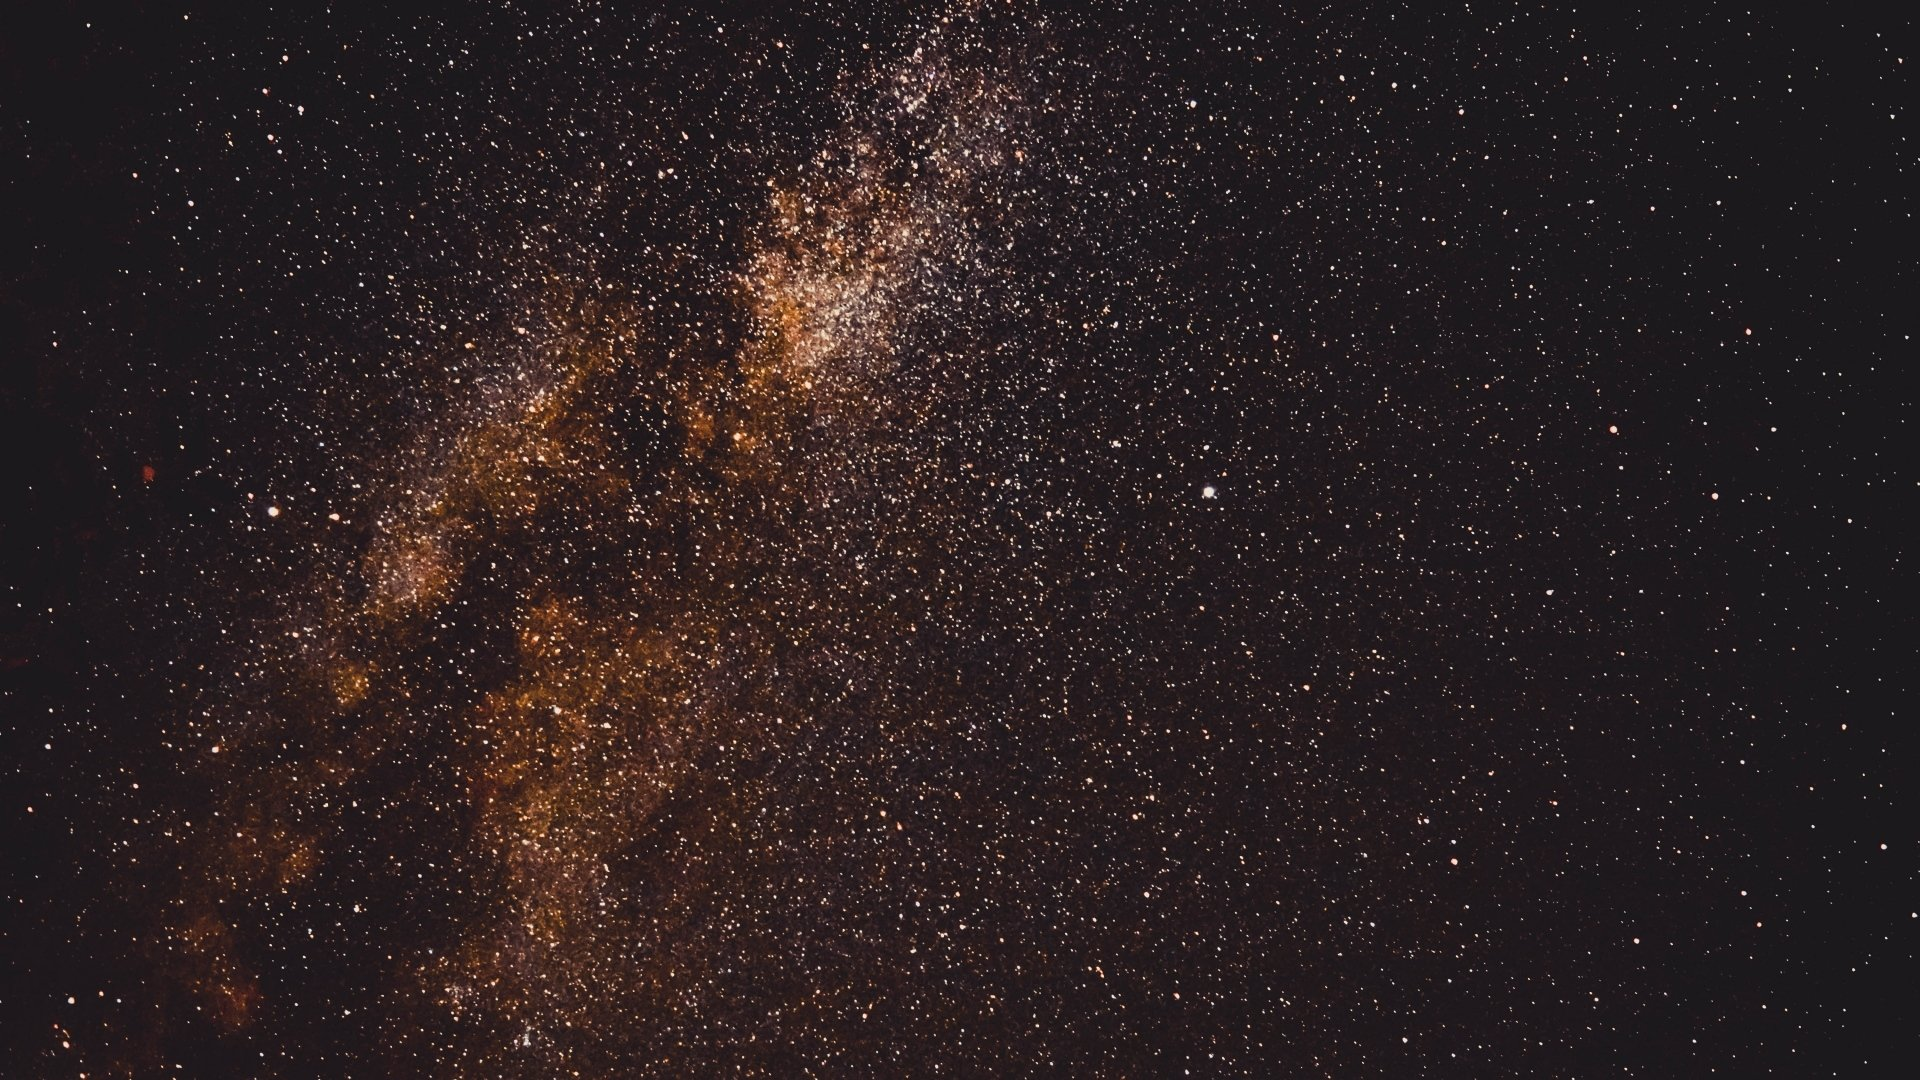 space wallpaper 4k,black,sky,galaxy,astronomical object,brown